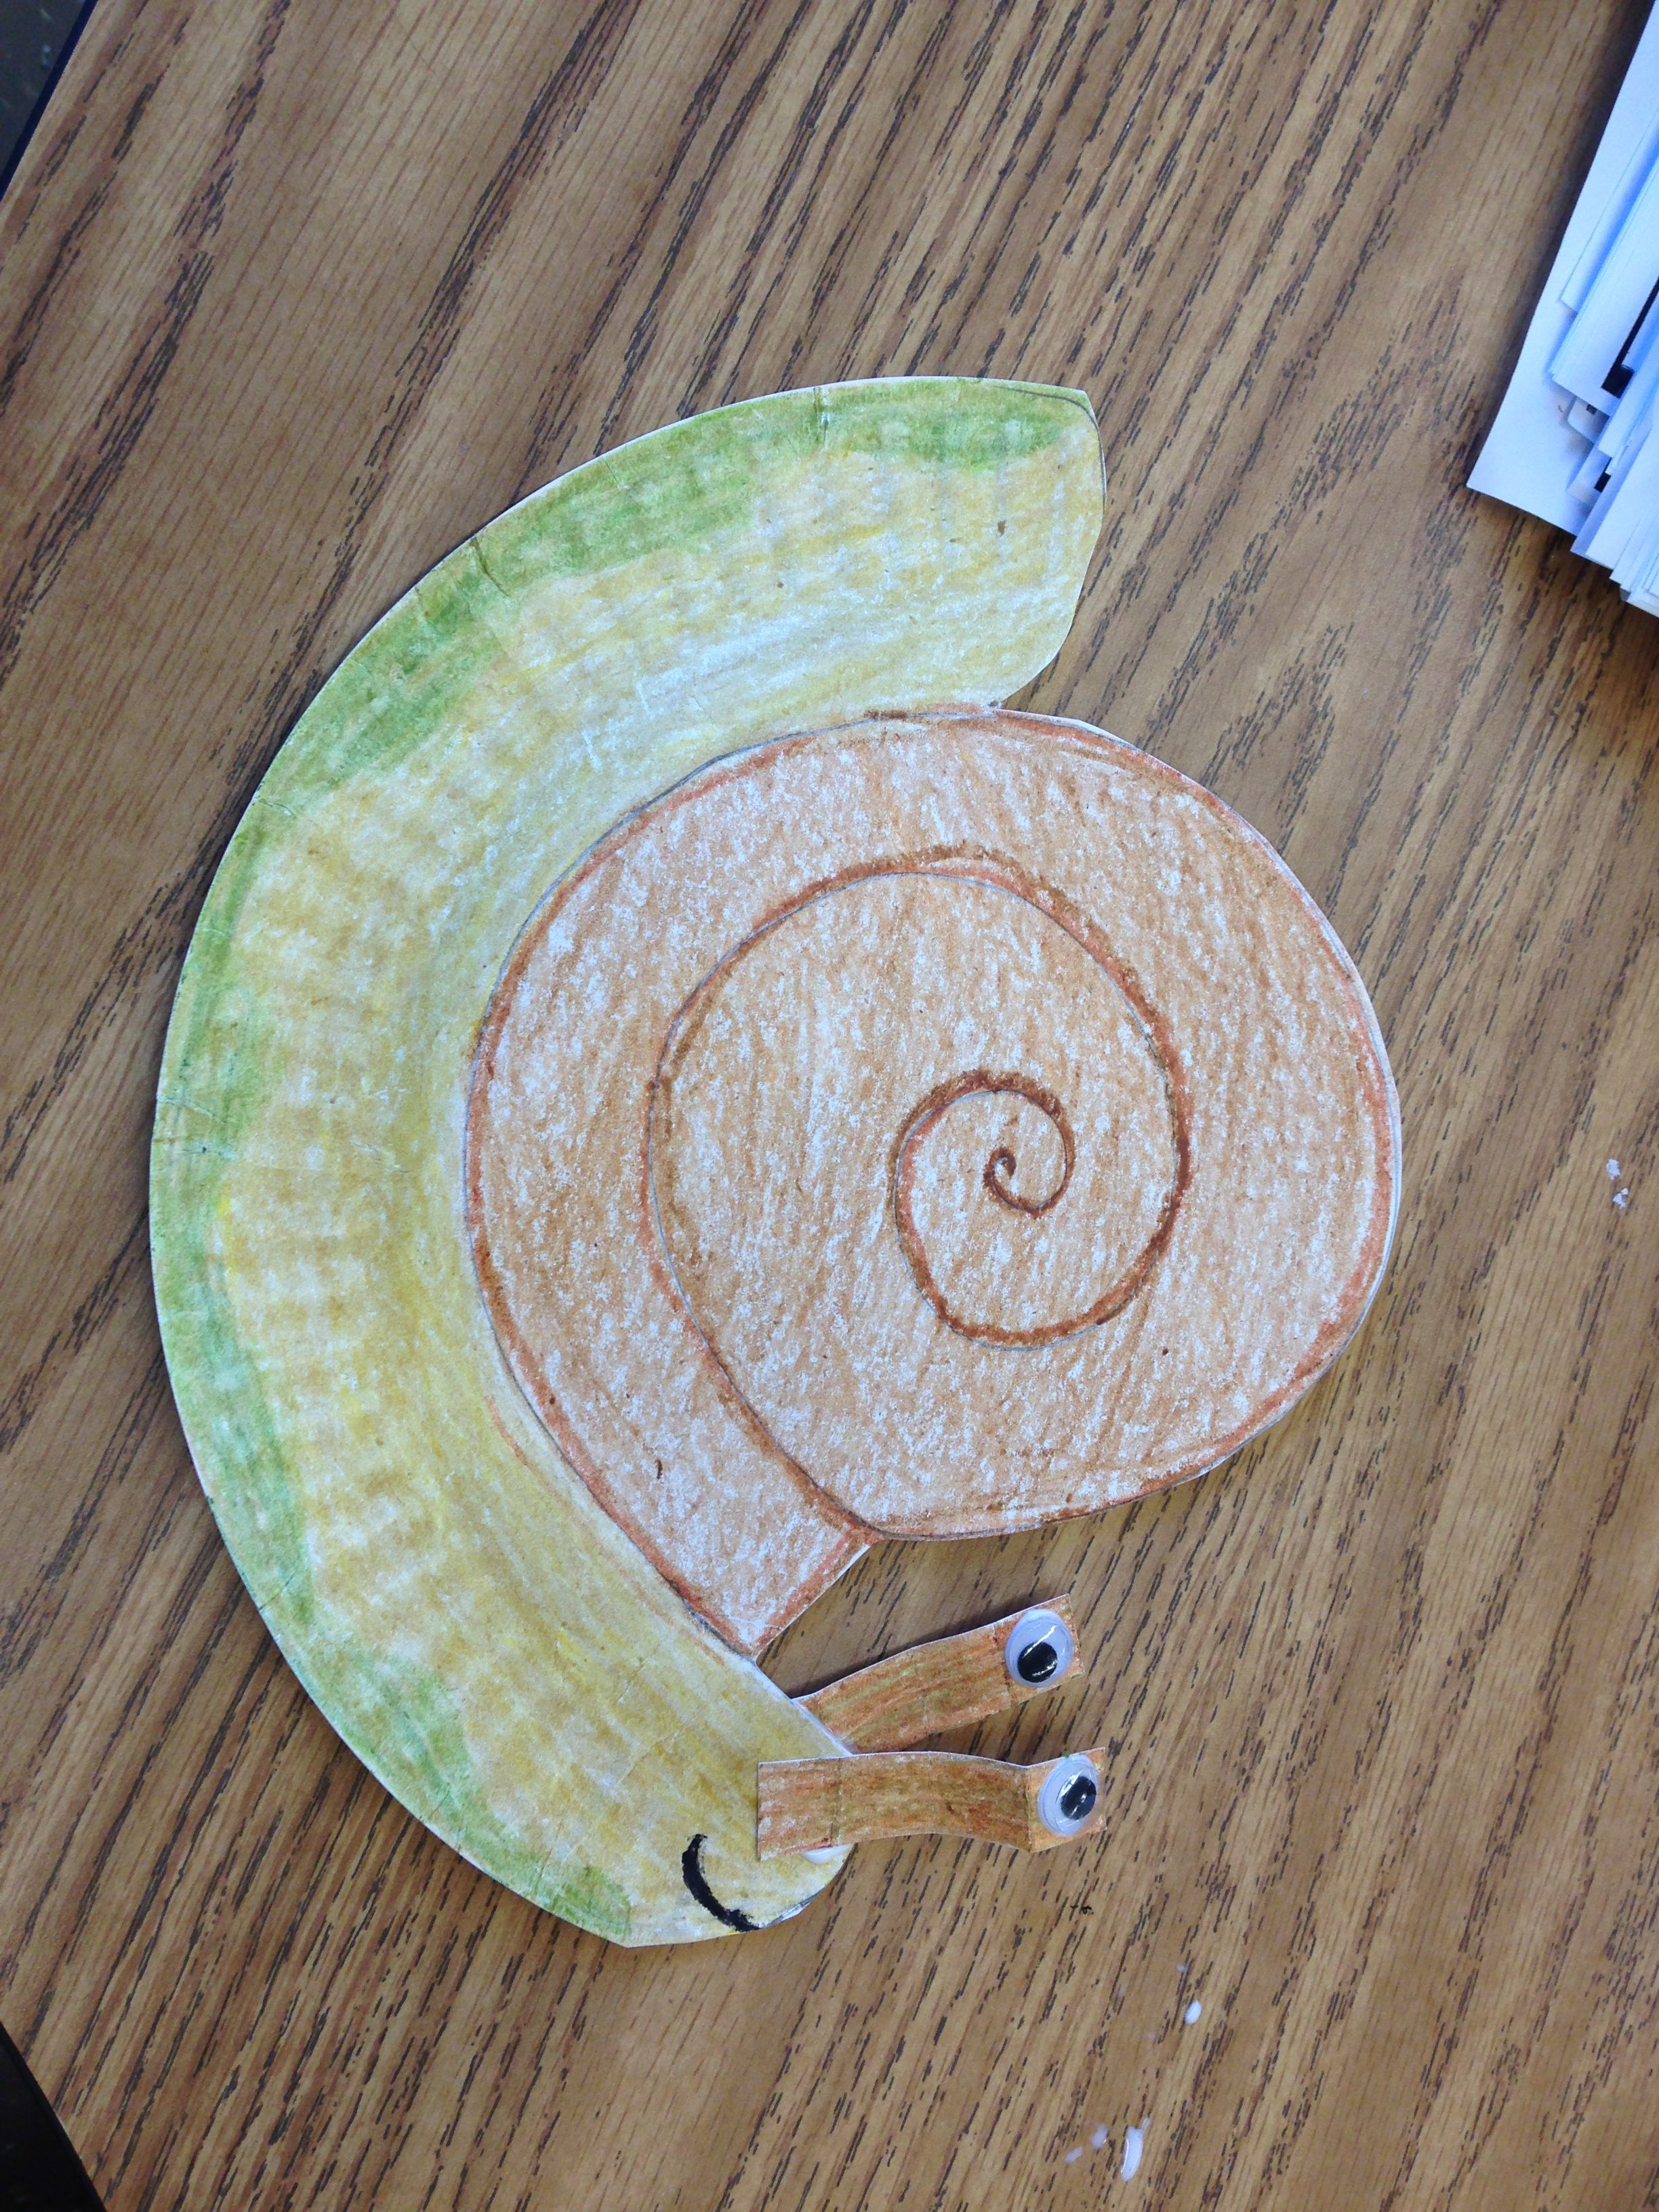 Snail Crafts With Paper Plates